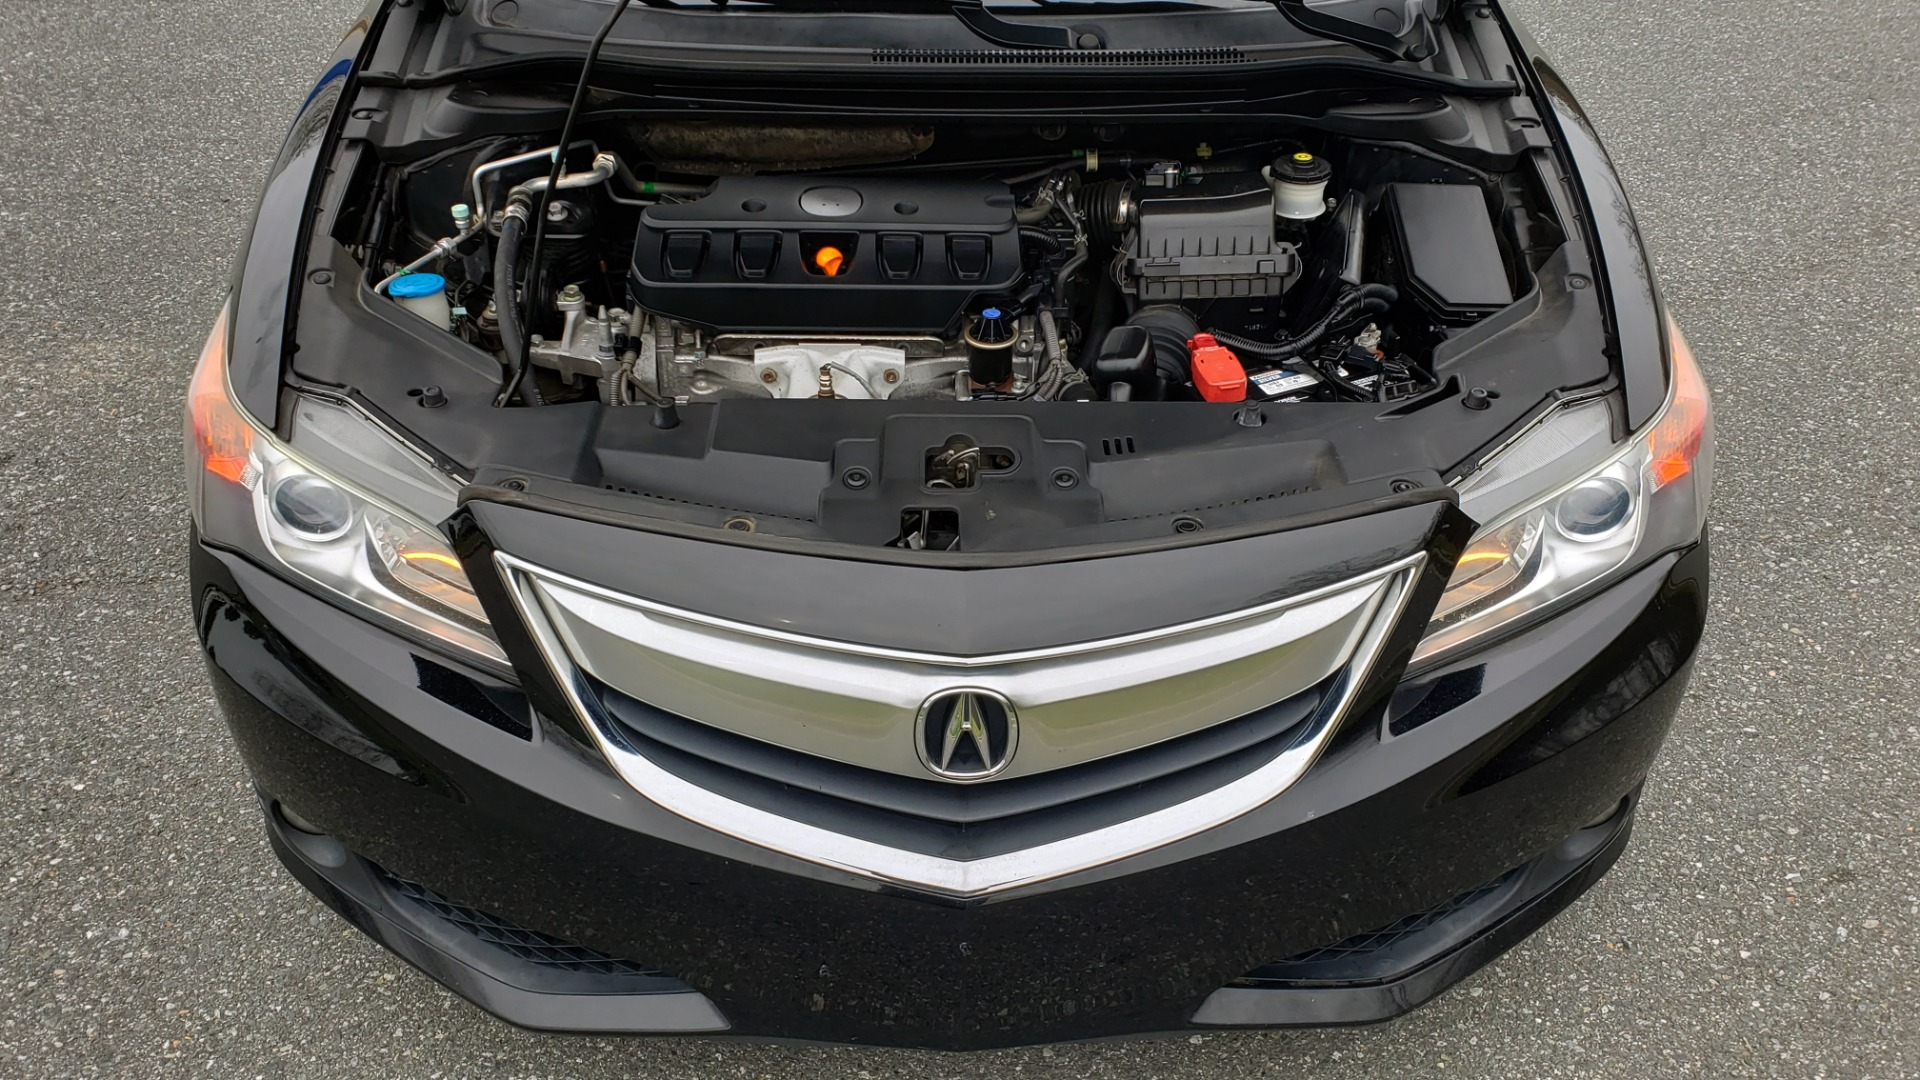 Used 2013 Acura ILX TECH PKG / SUNROOF / NAV / DUAL-ZONE A/C / REARVIEW for sale Sold at Formula Imports in Charlotte NC 28227 10